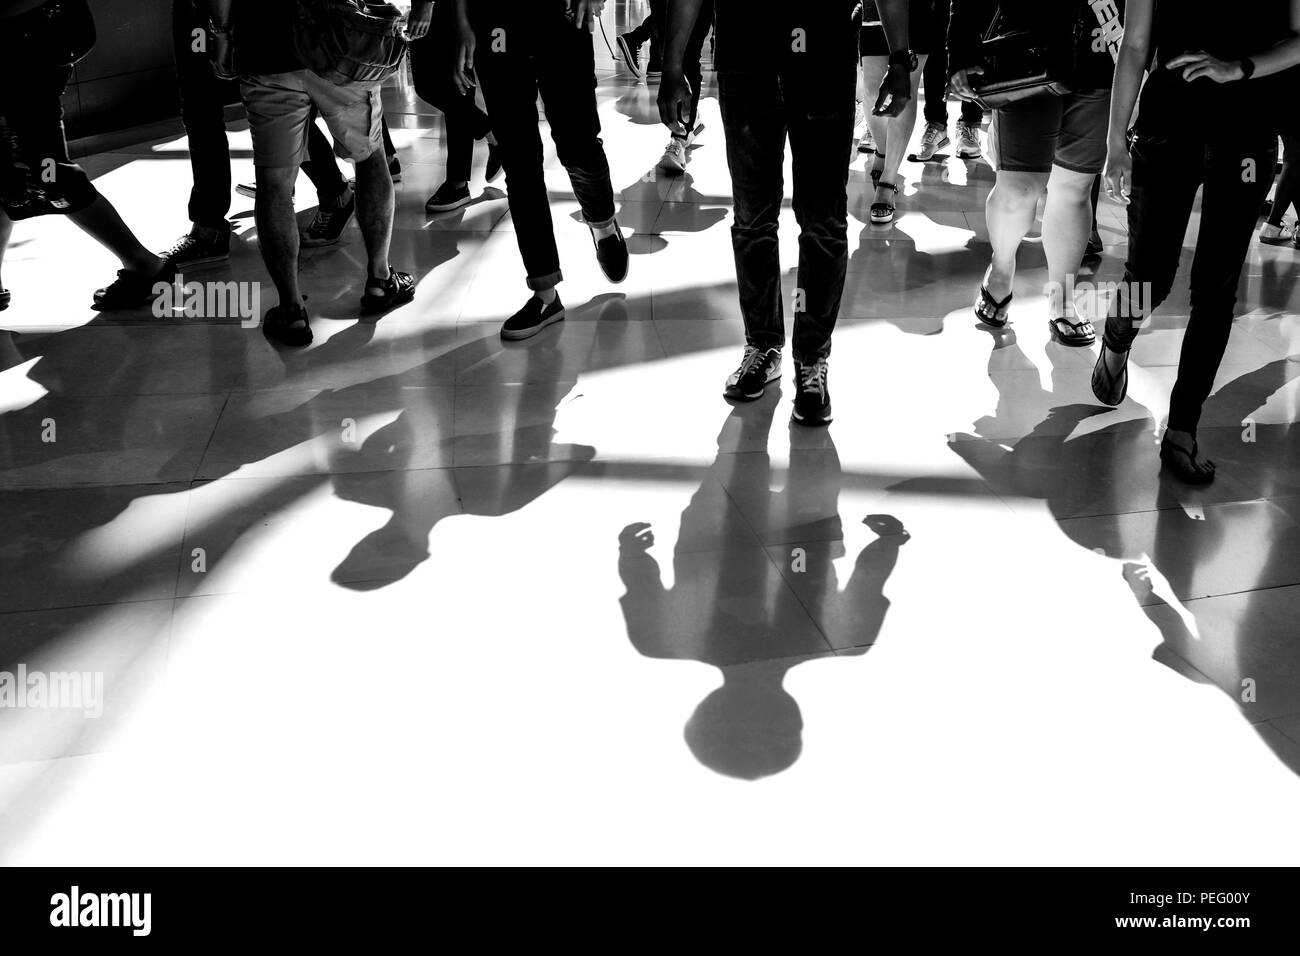 People walking and sunlight shining from behind making shadow on the floor. Black and white filter effect. - Stock Image